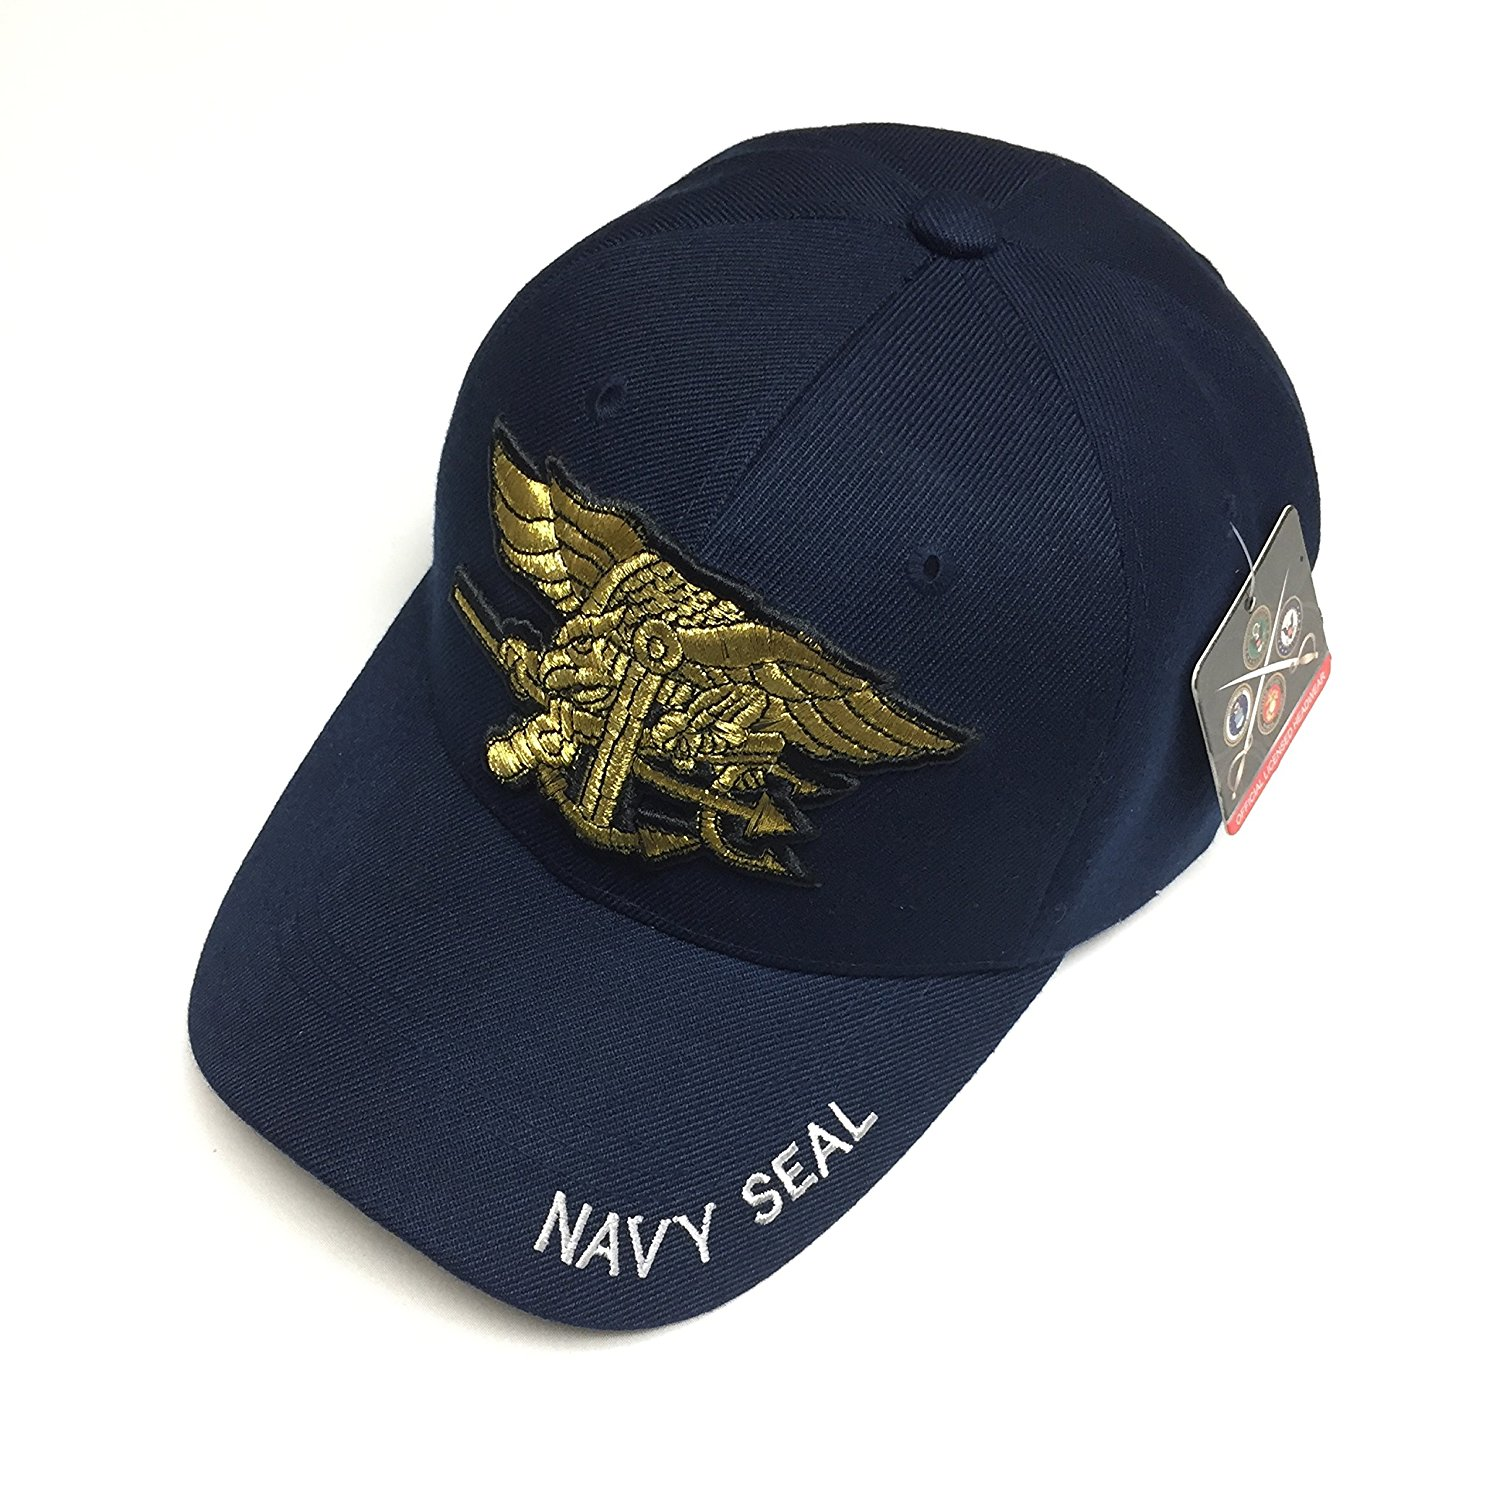 bf11415d1 Cheap Navy Seal Gear, find Navy Seal Gear deals on line at Alibaba.com